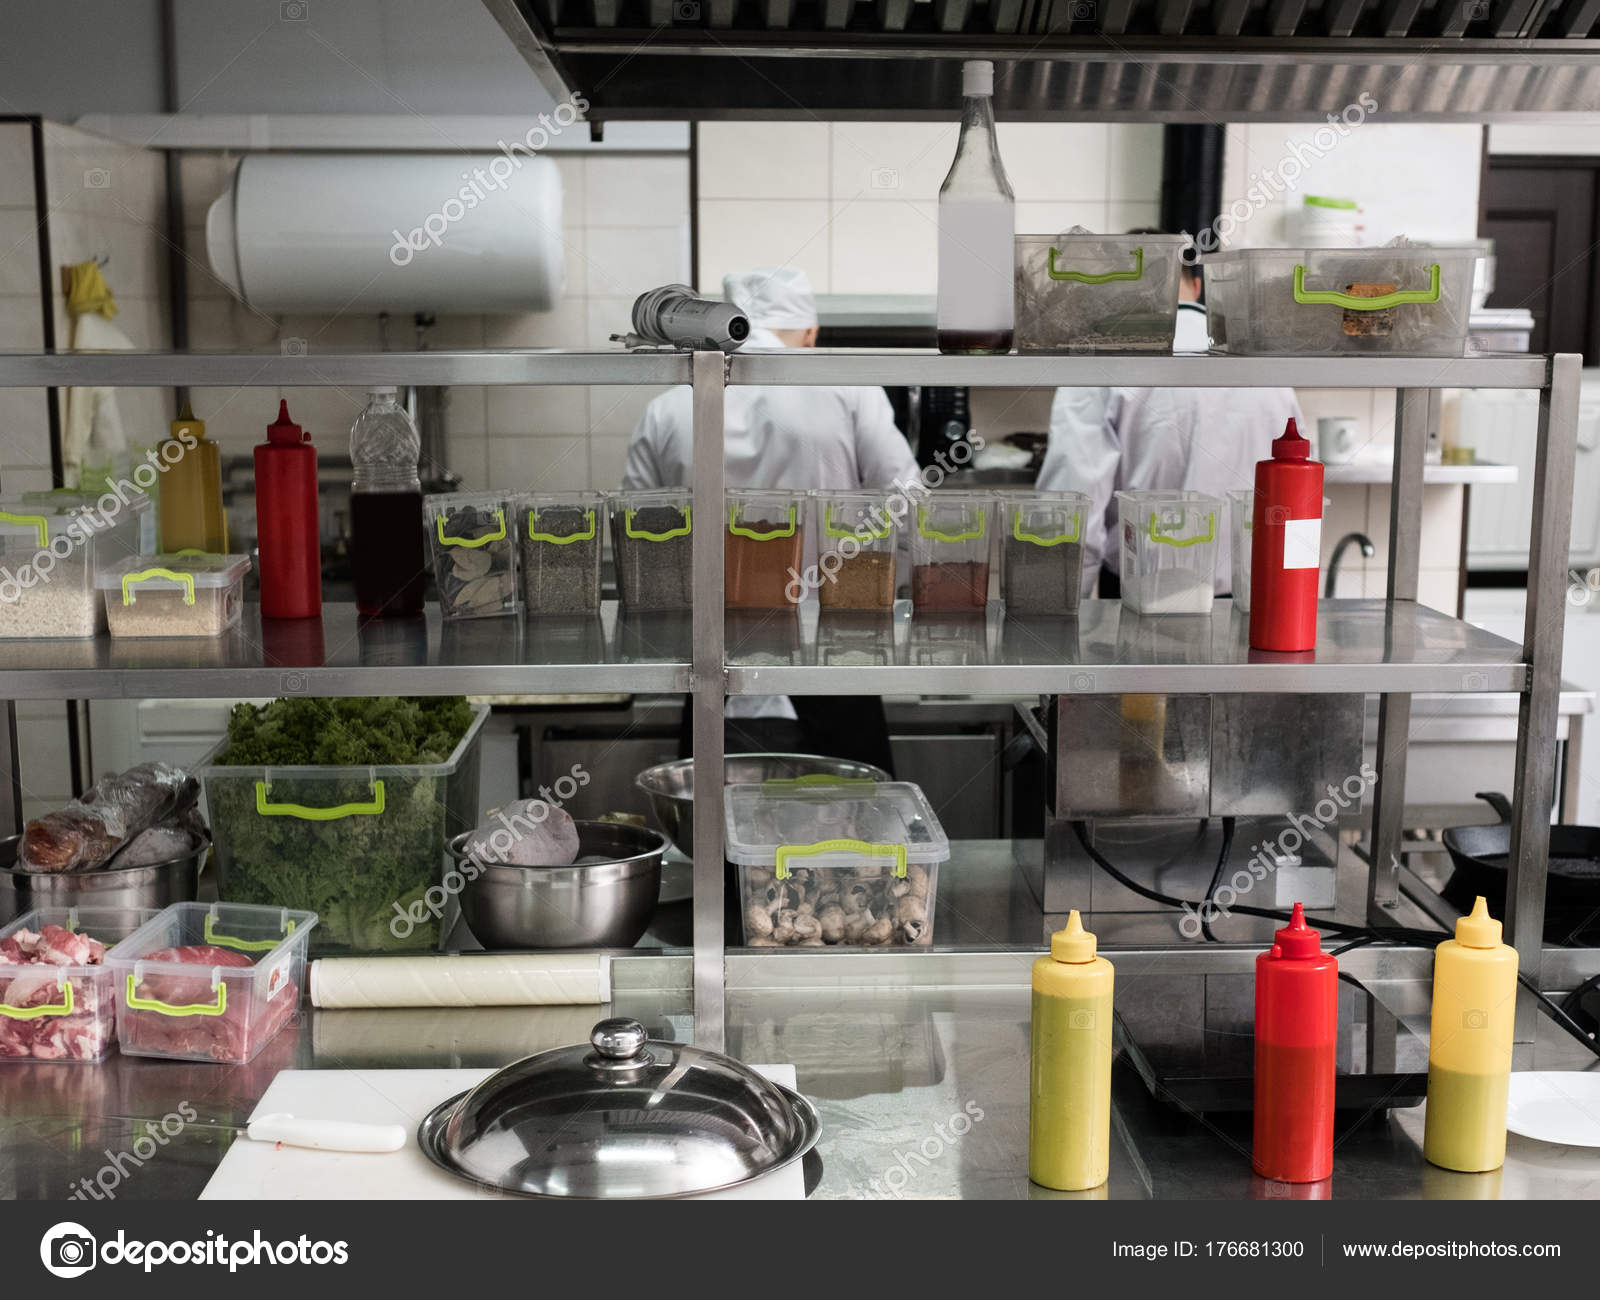 Restaurant Kitchen Interior Workspace Clean Tidy U2014 Stock Photo